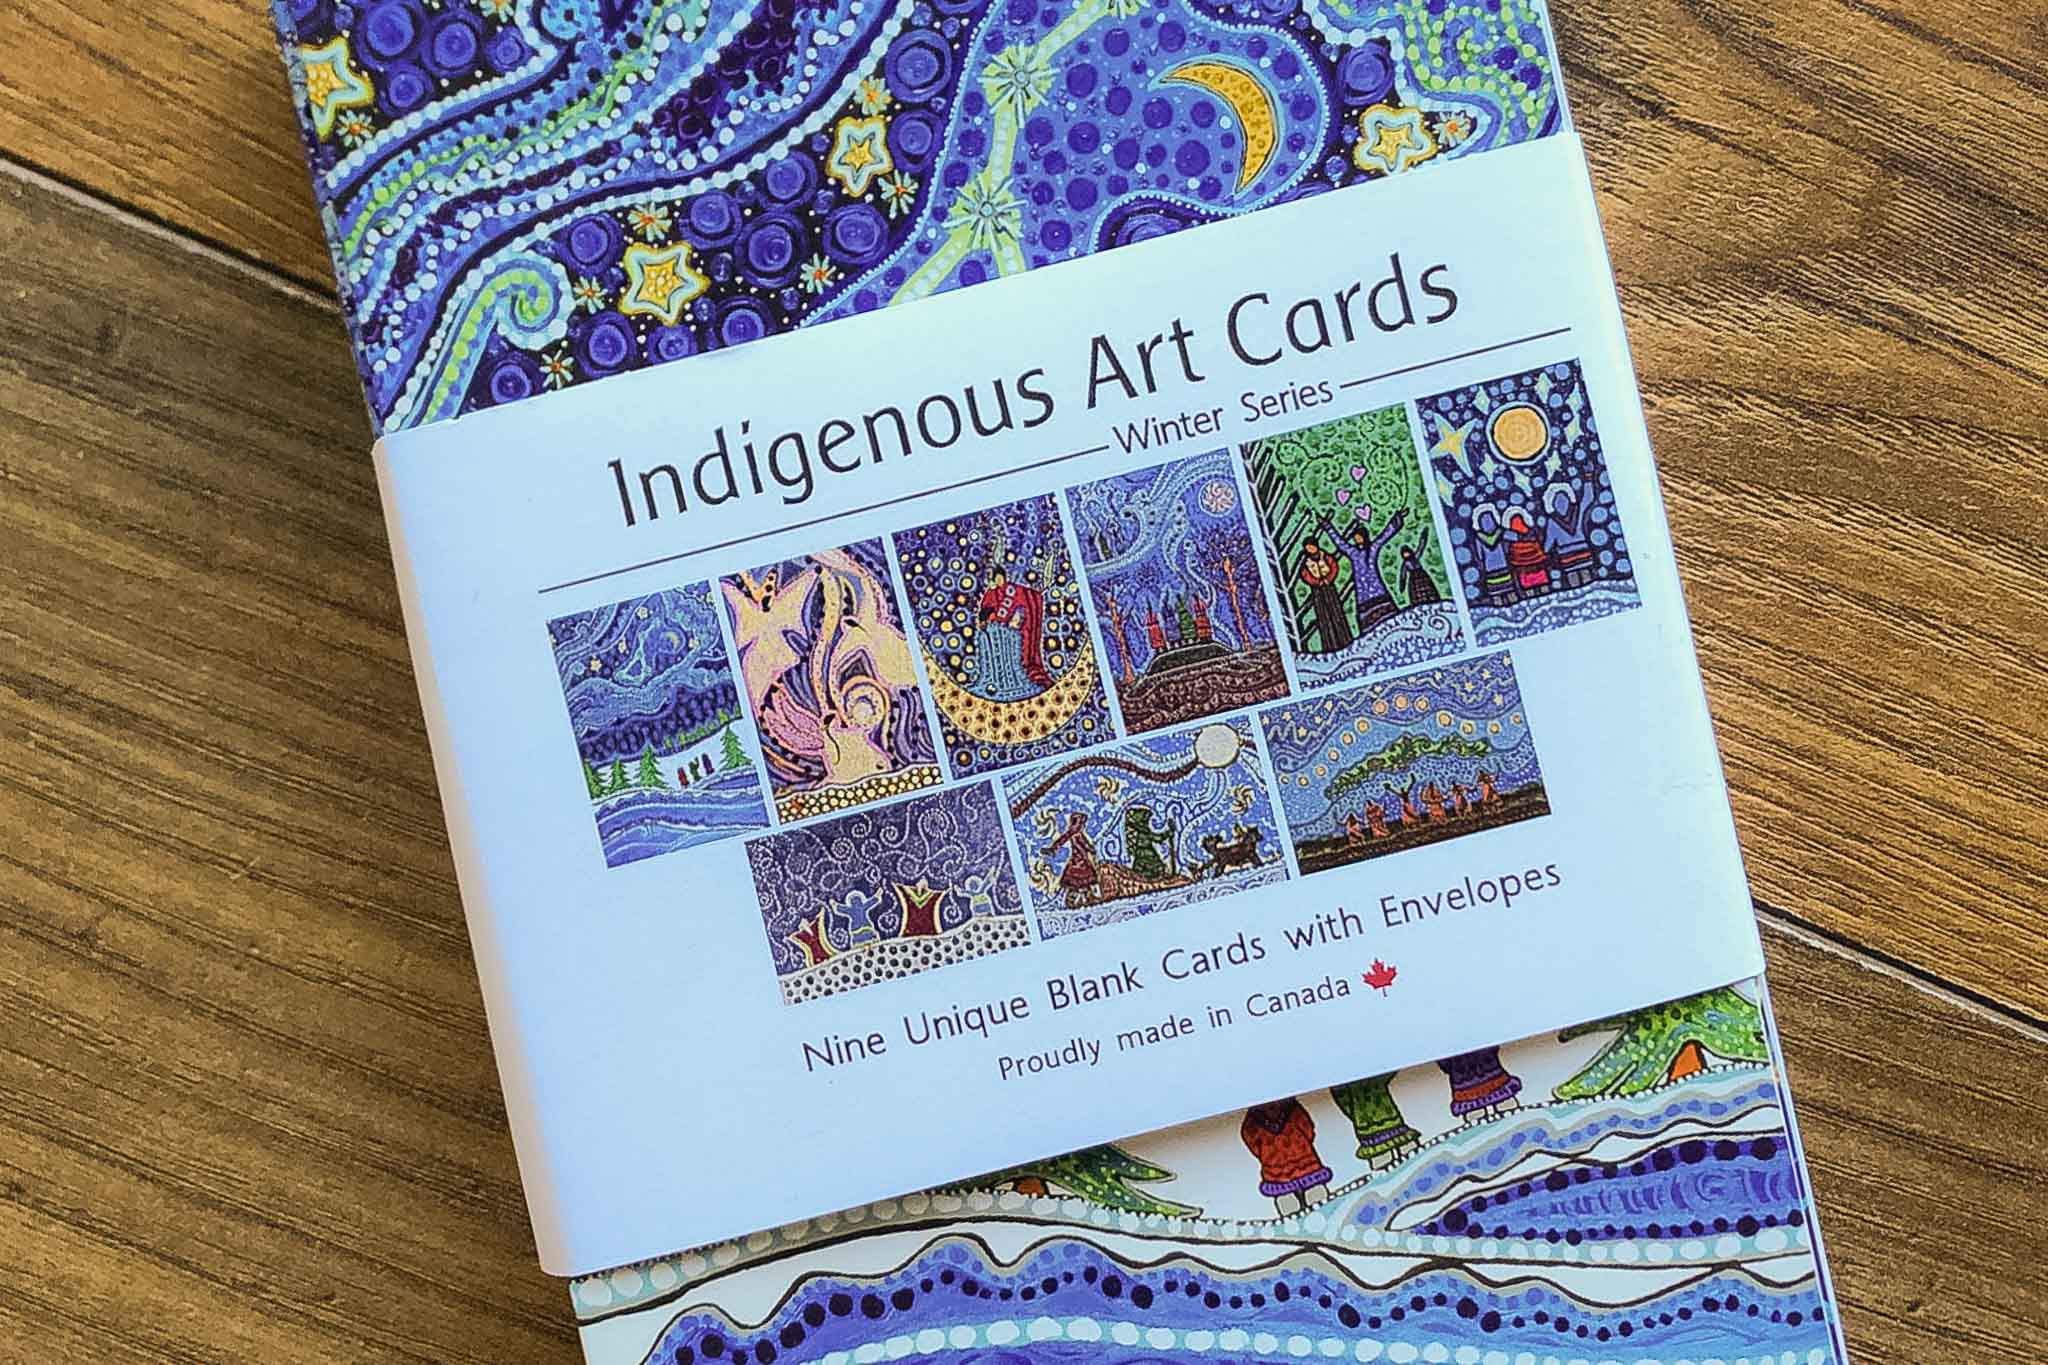 Winter Series Indigenous Art Cards by Strong Nations